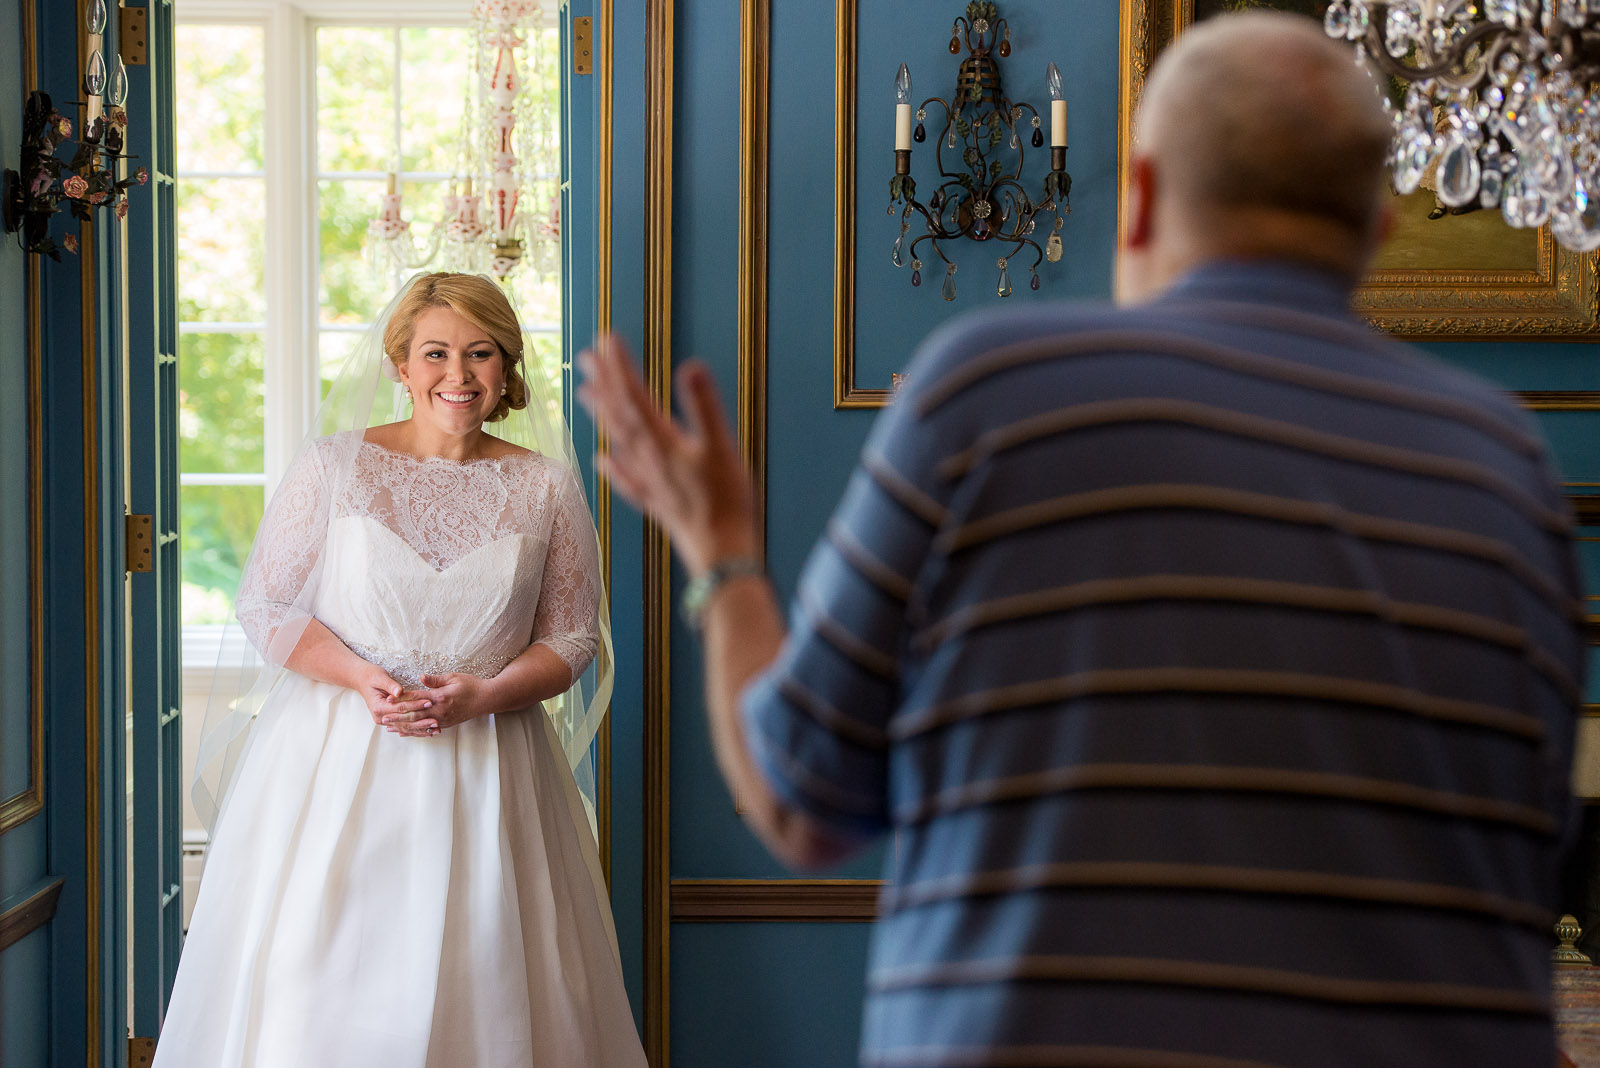 eric_and_christy_photographers_blog_wedding_emilypeter-3